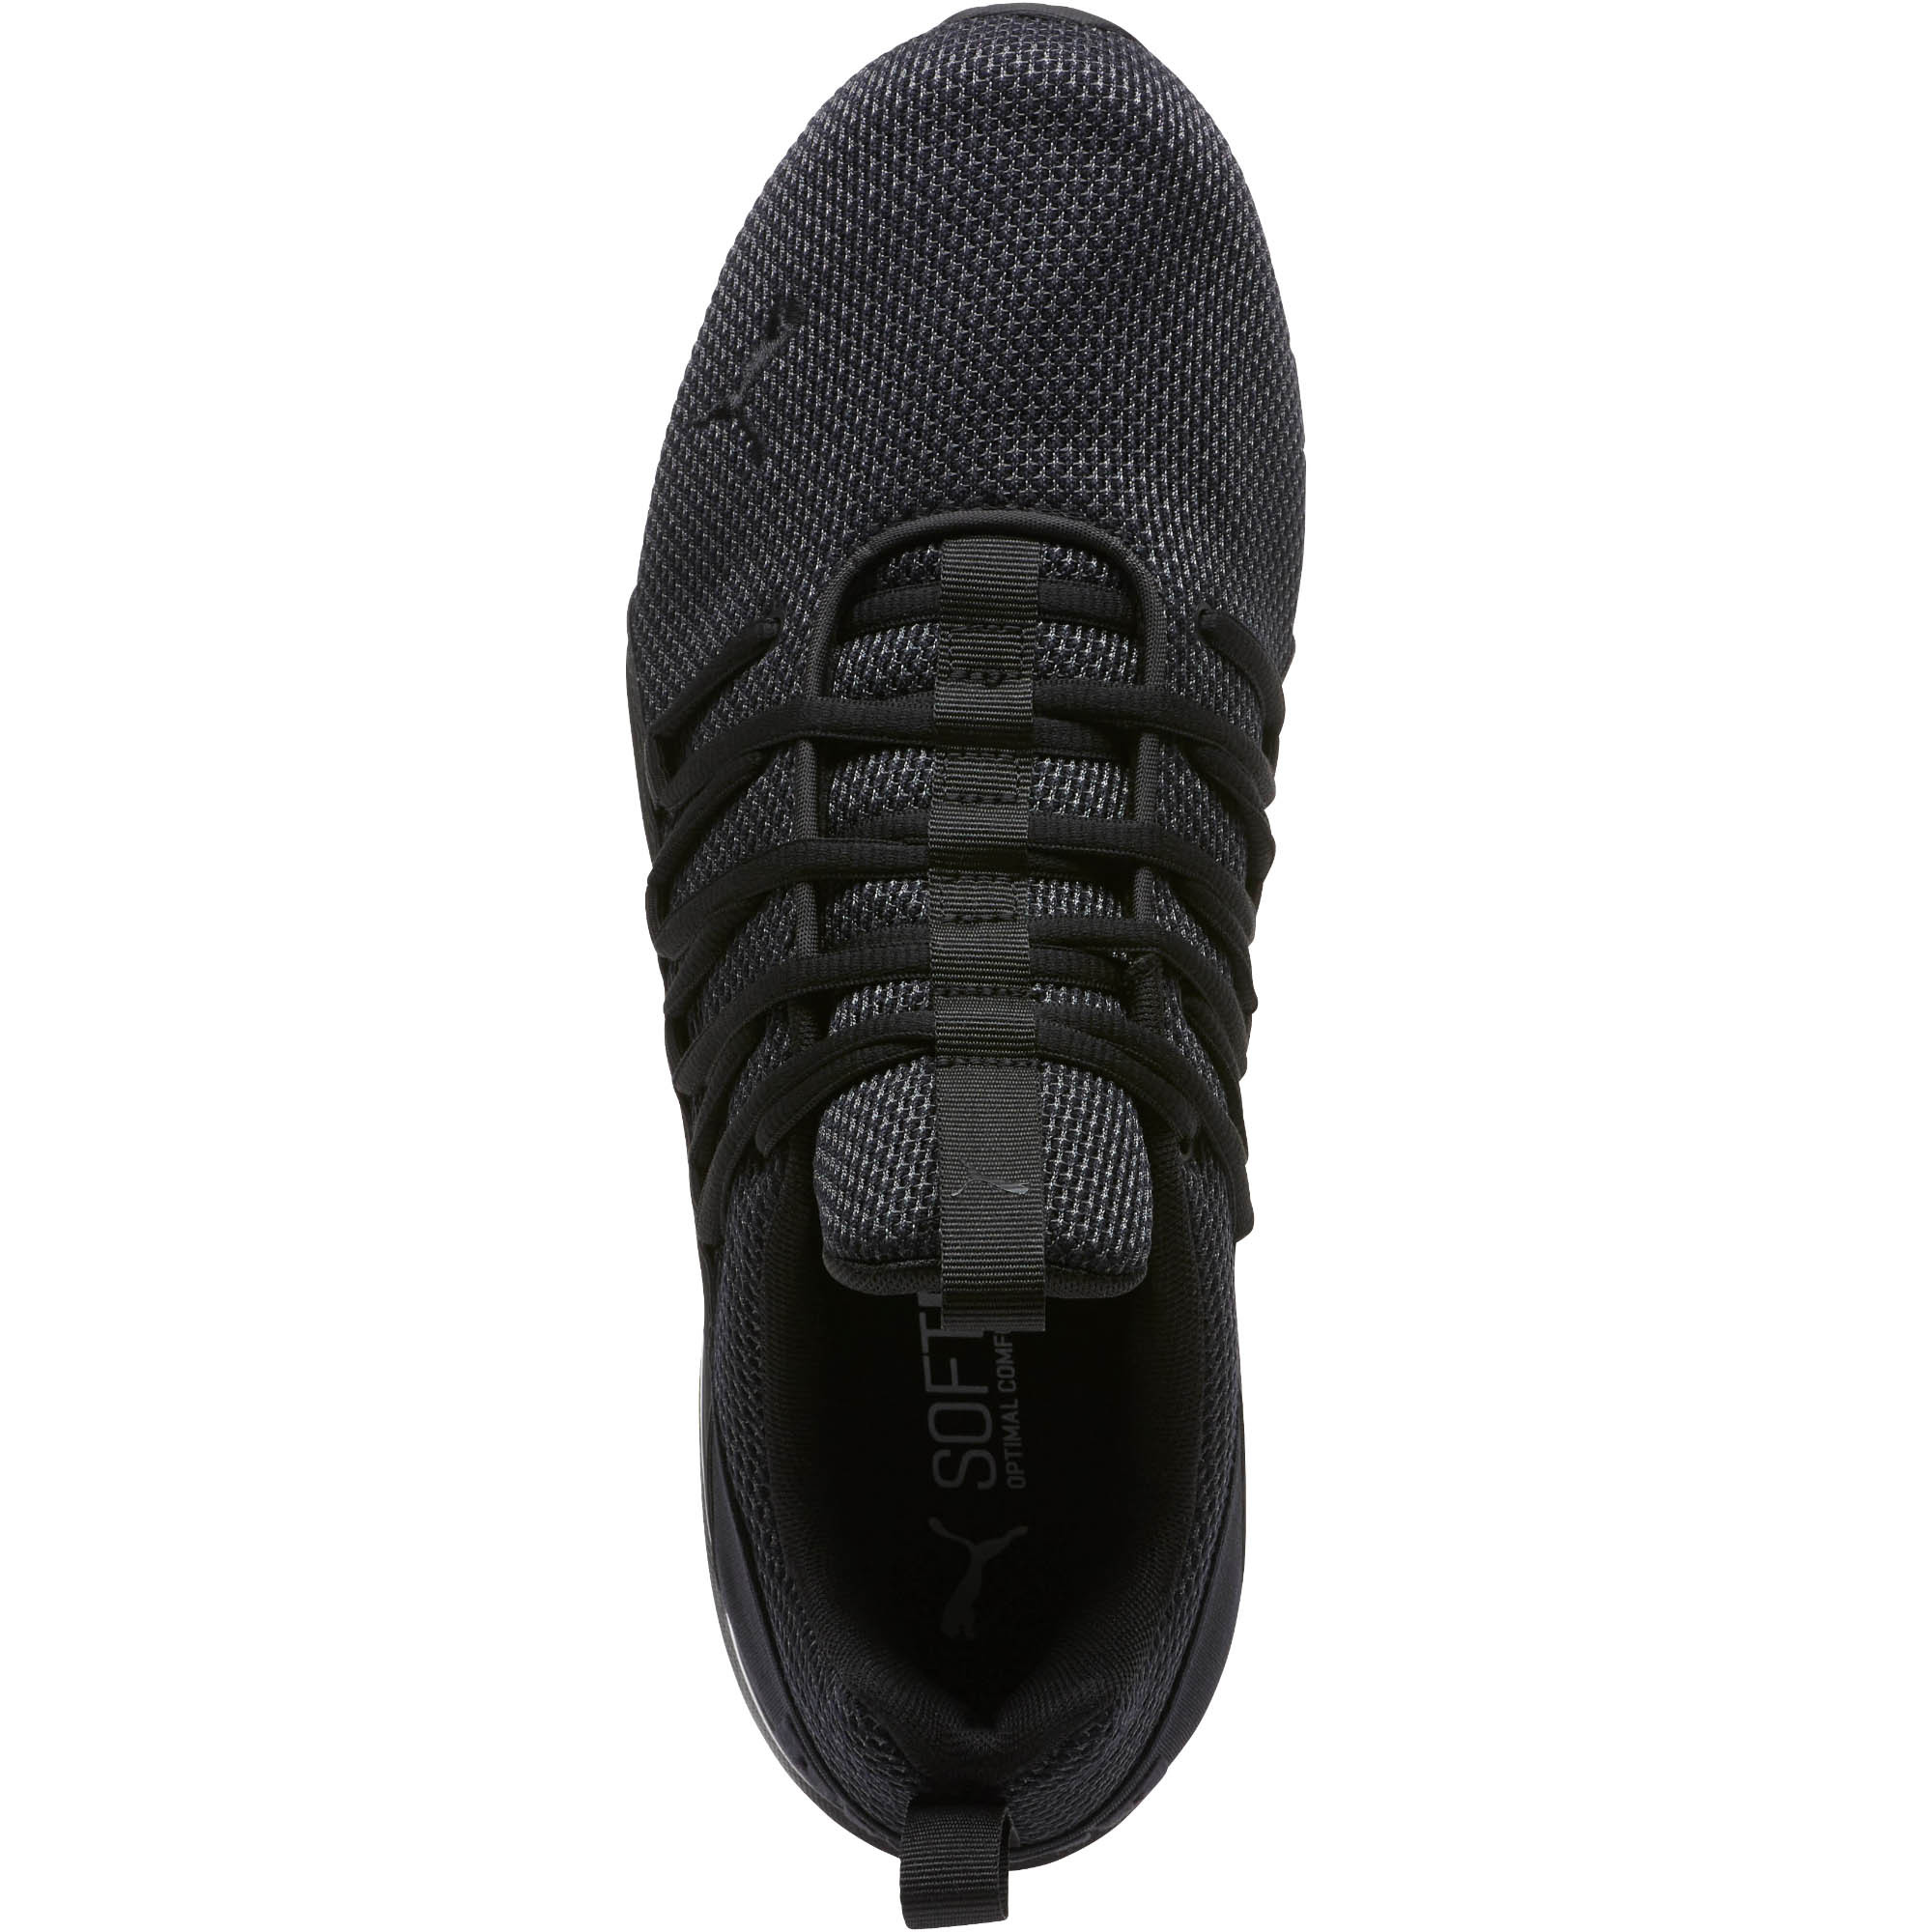 PUMA-Men-039-s-Axelion-Mesh-Training-Shoes thumbnail 11